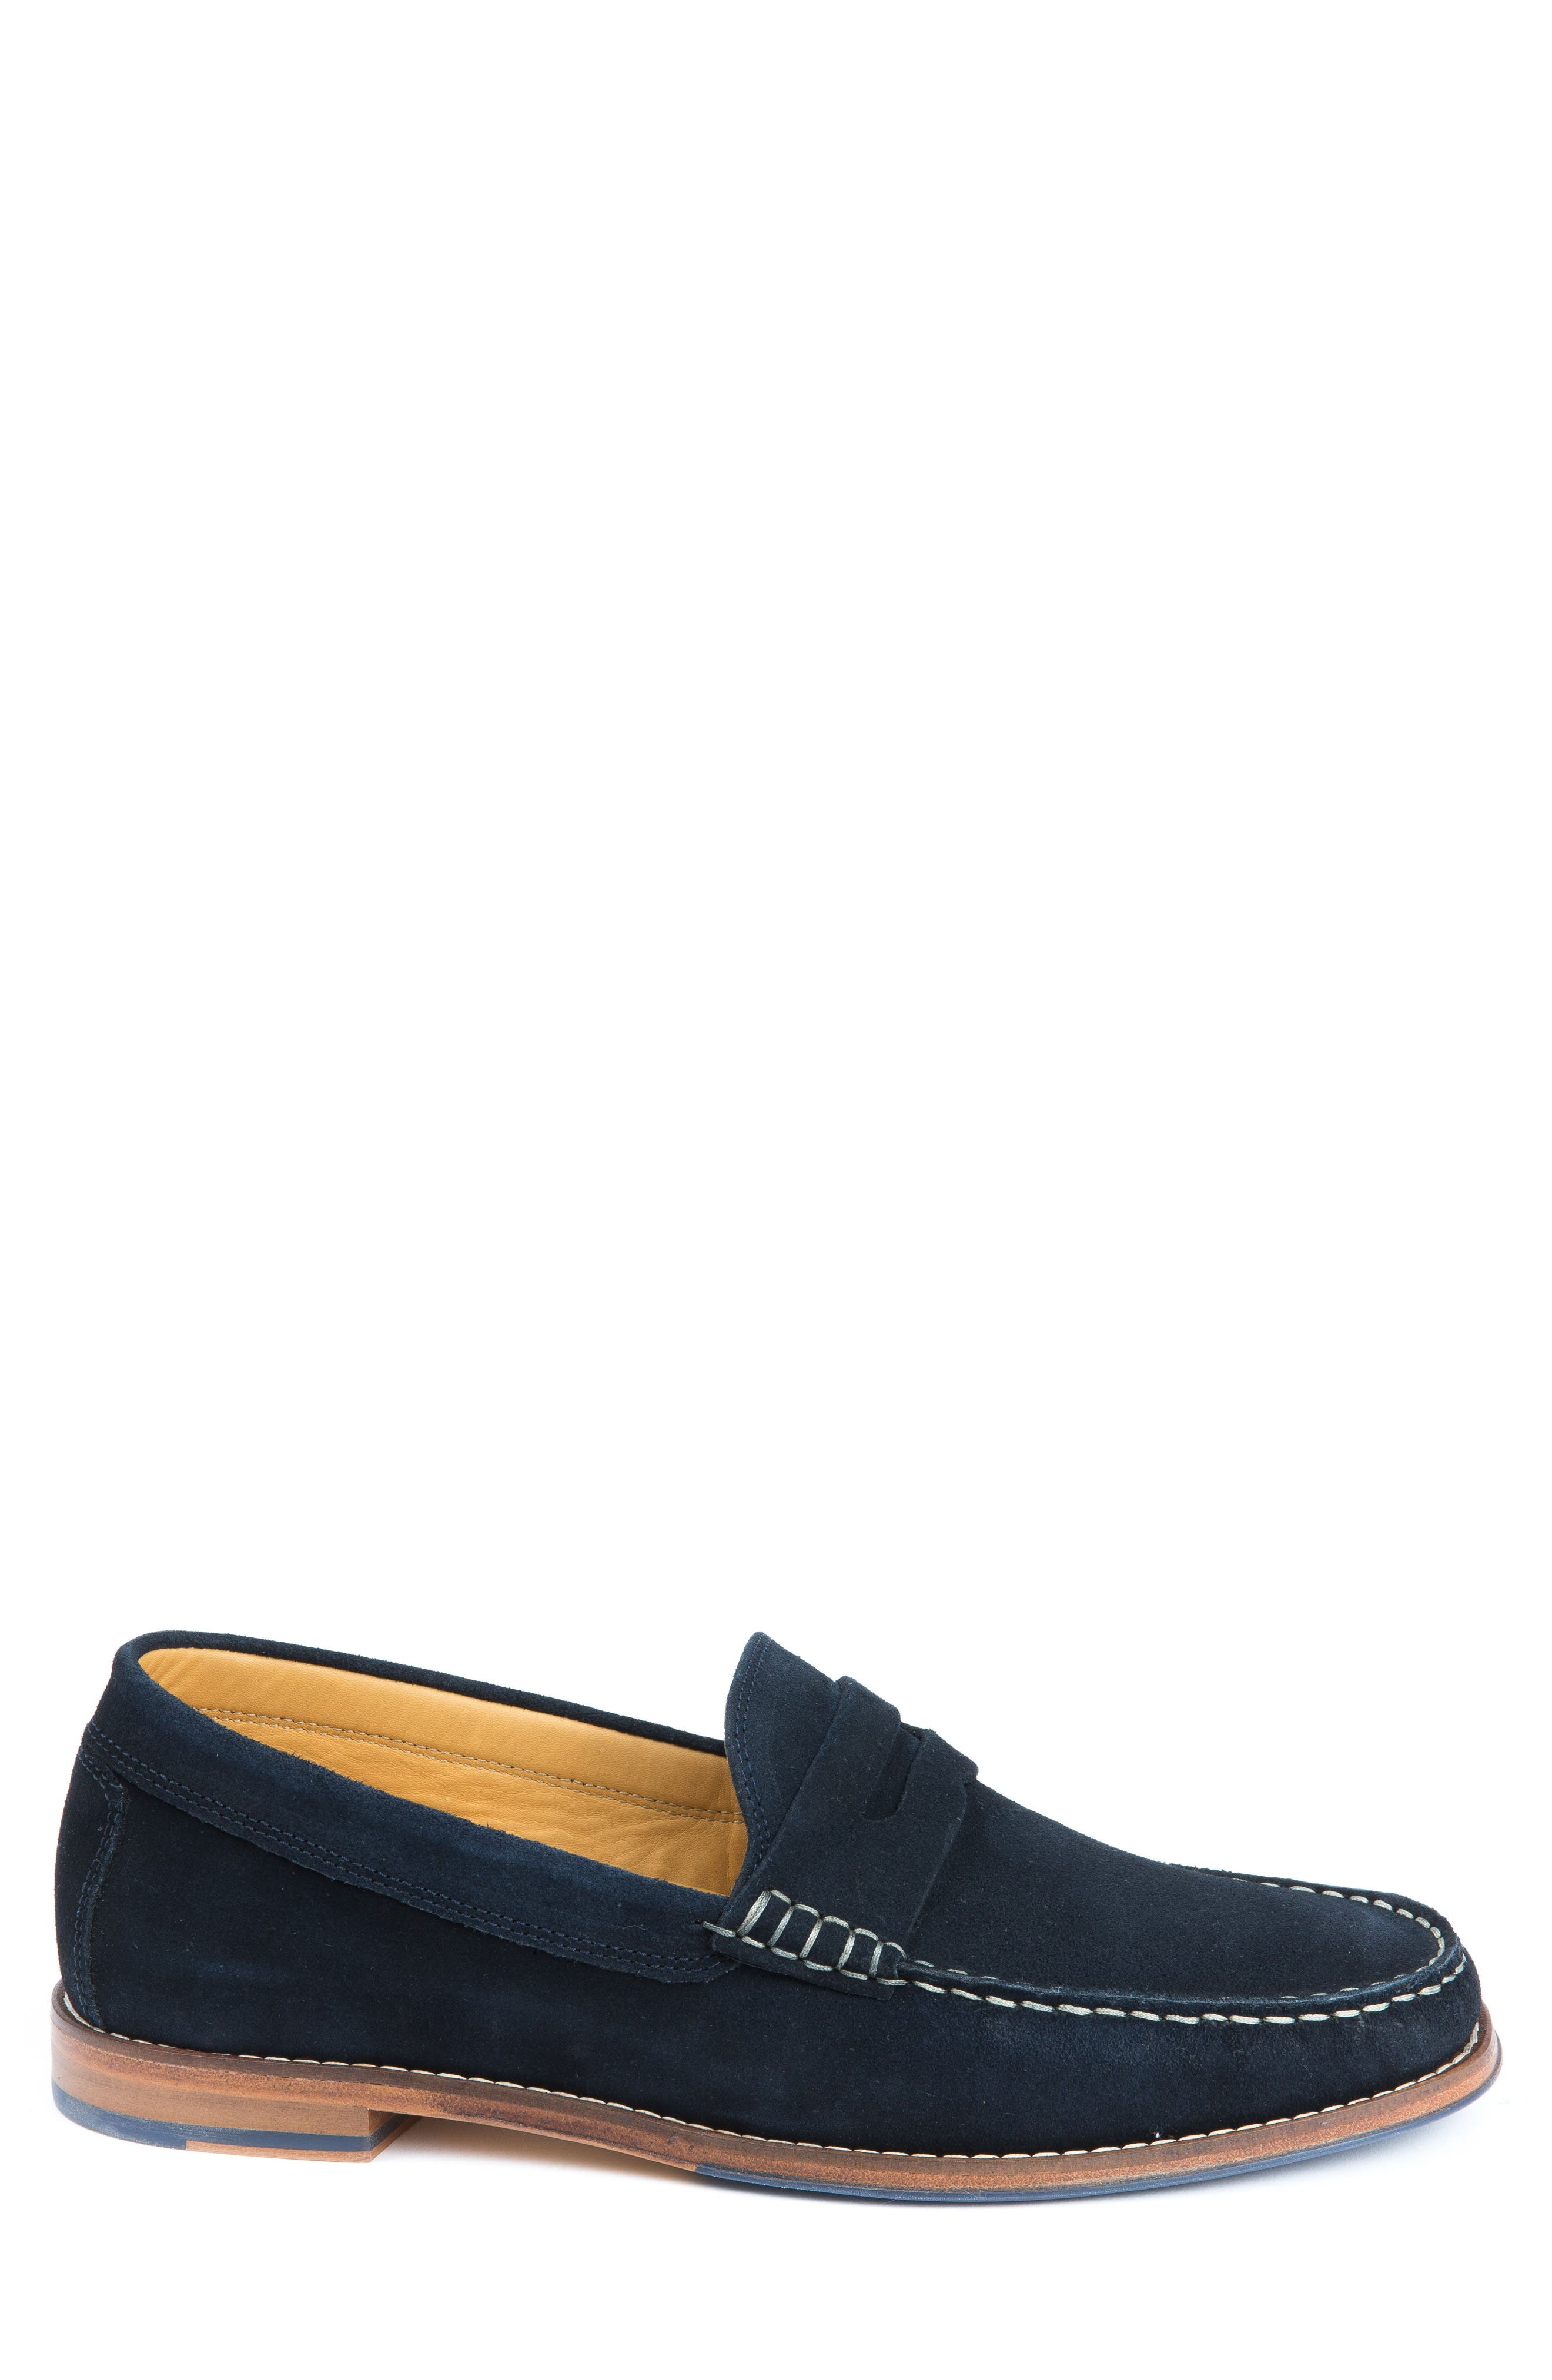 Ripleys Penny Loafer,                             Alternate thumbnail 3, color,                             Navy Suede